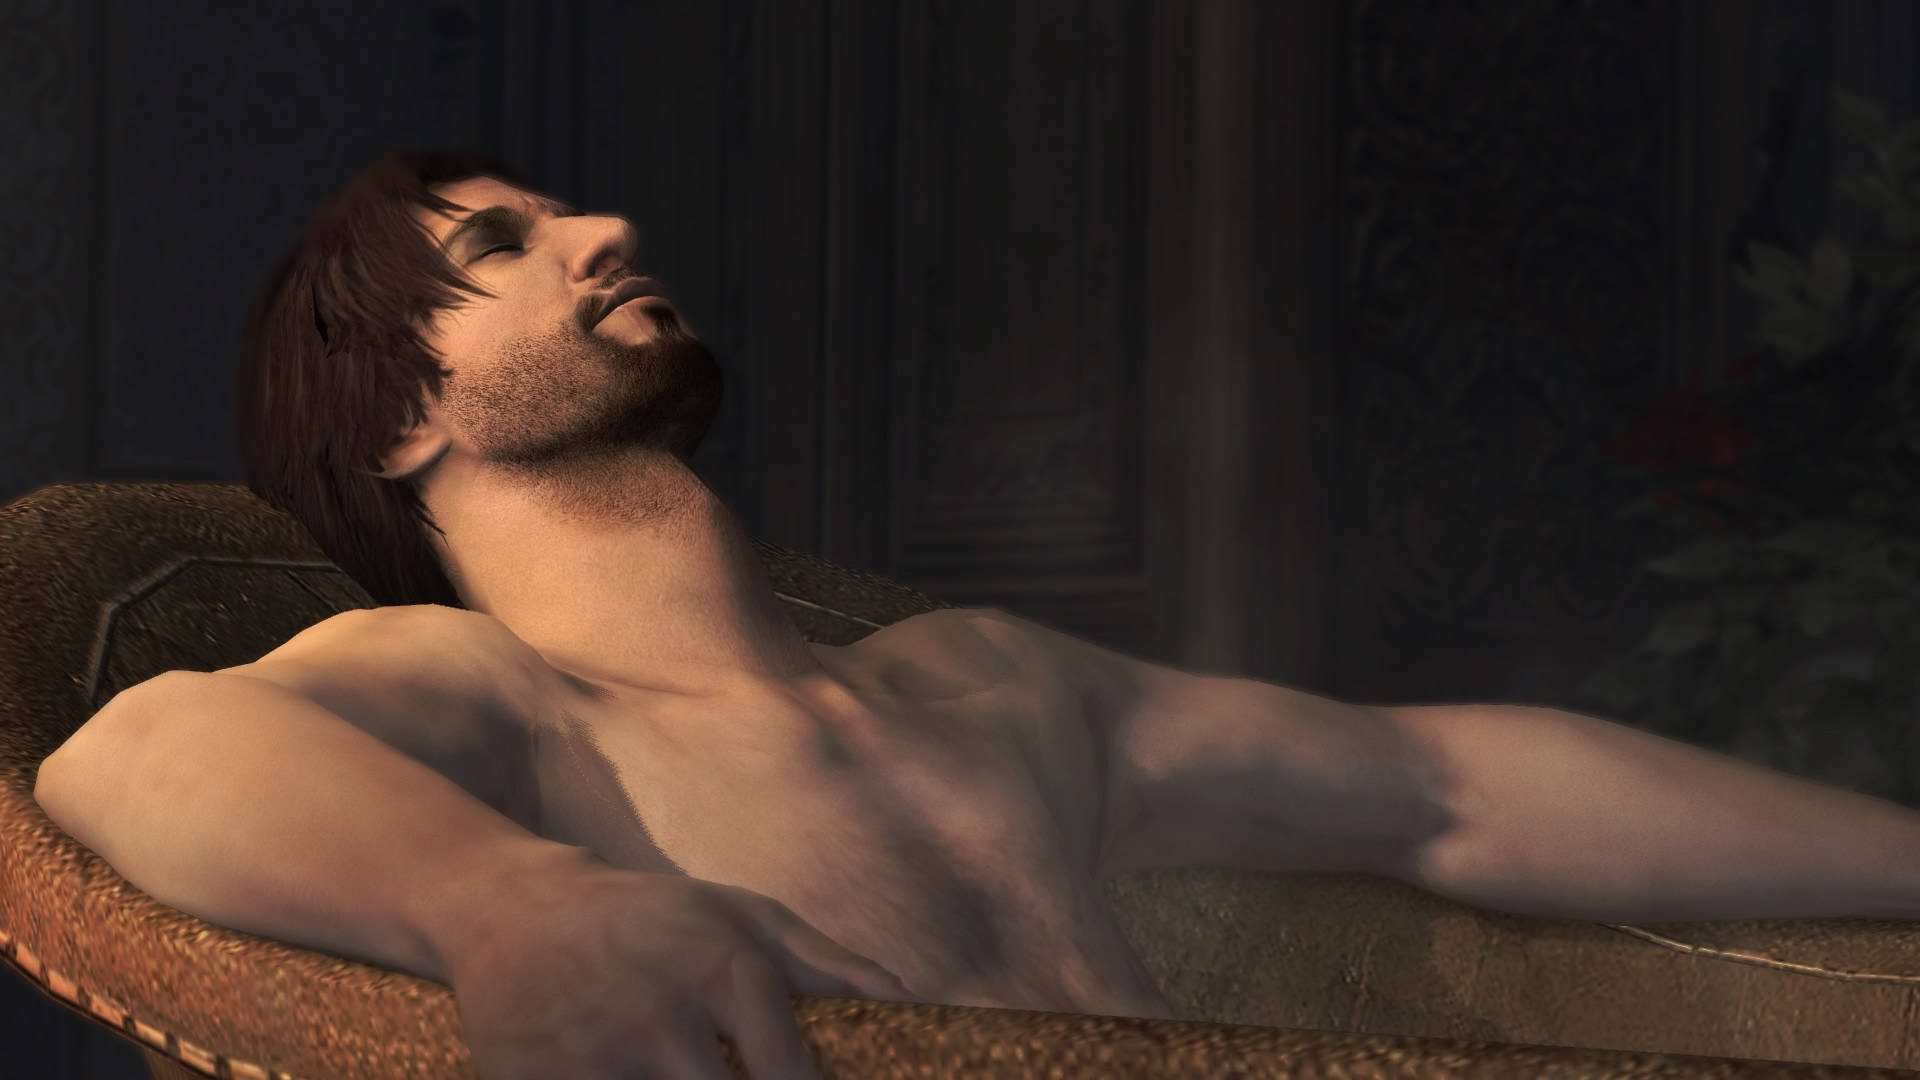 Nude patch assassin's creed porn scenes